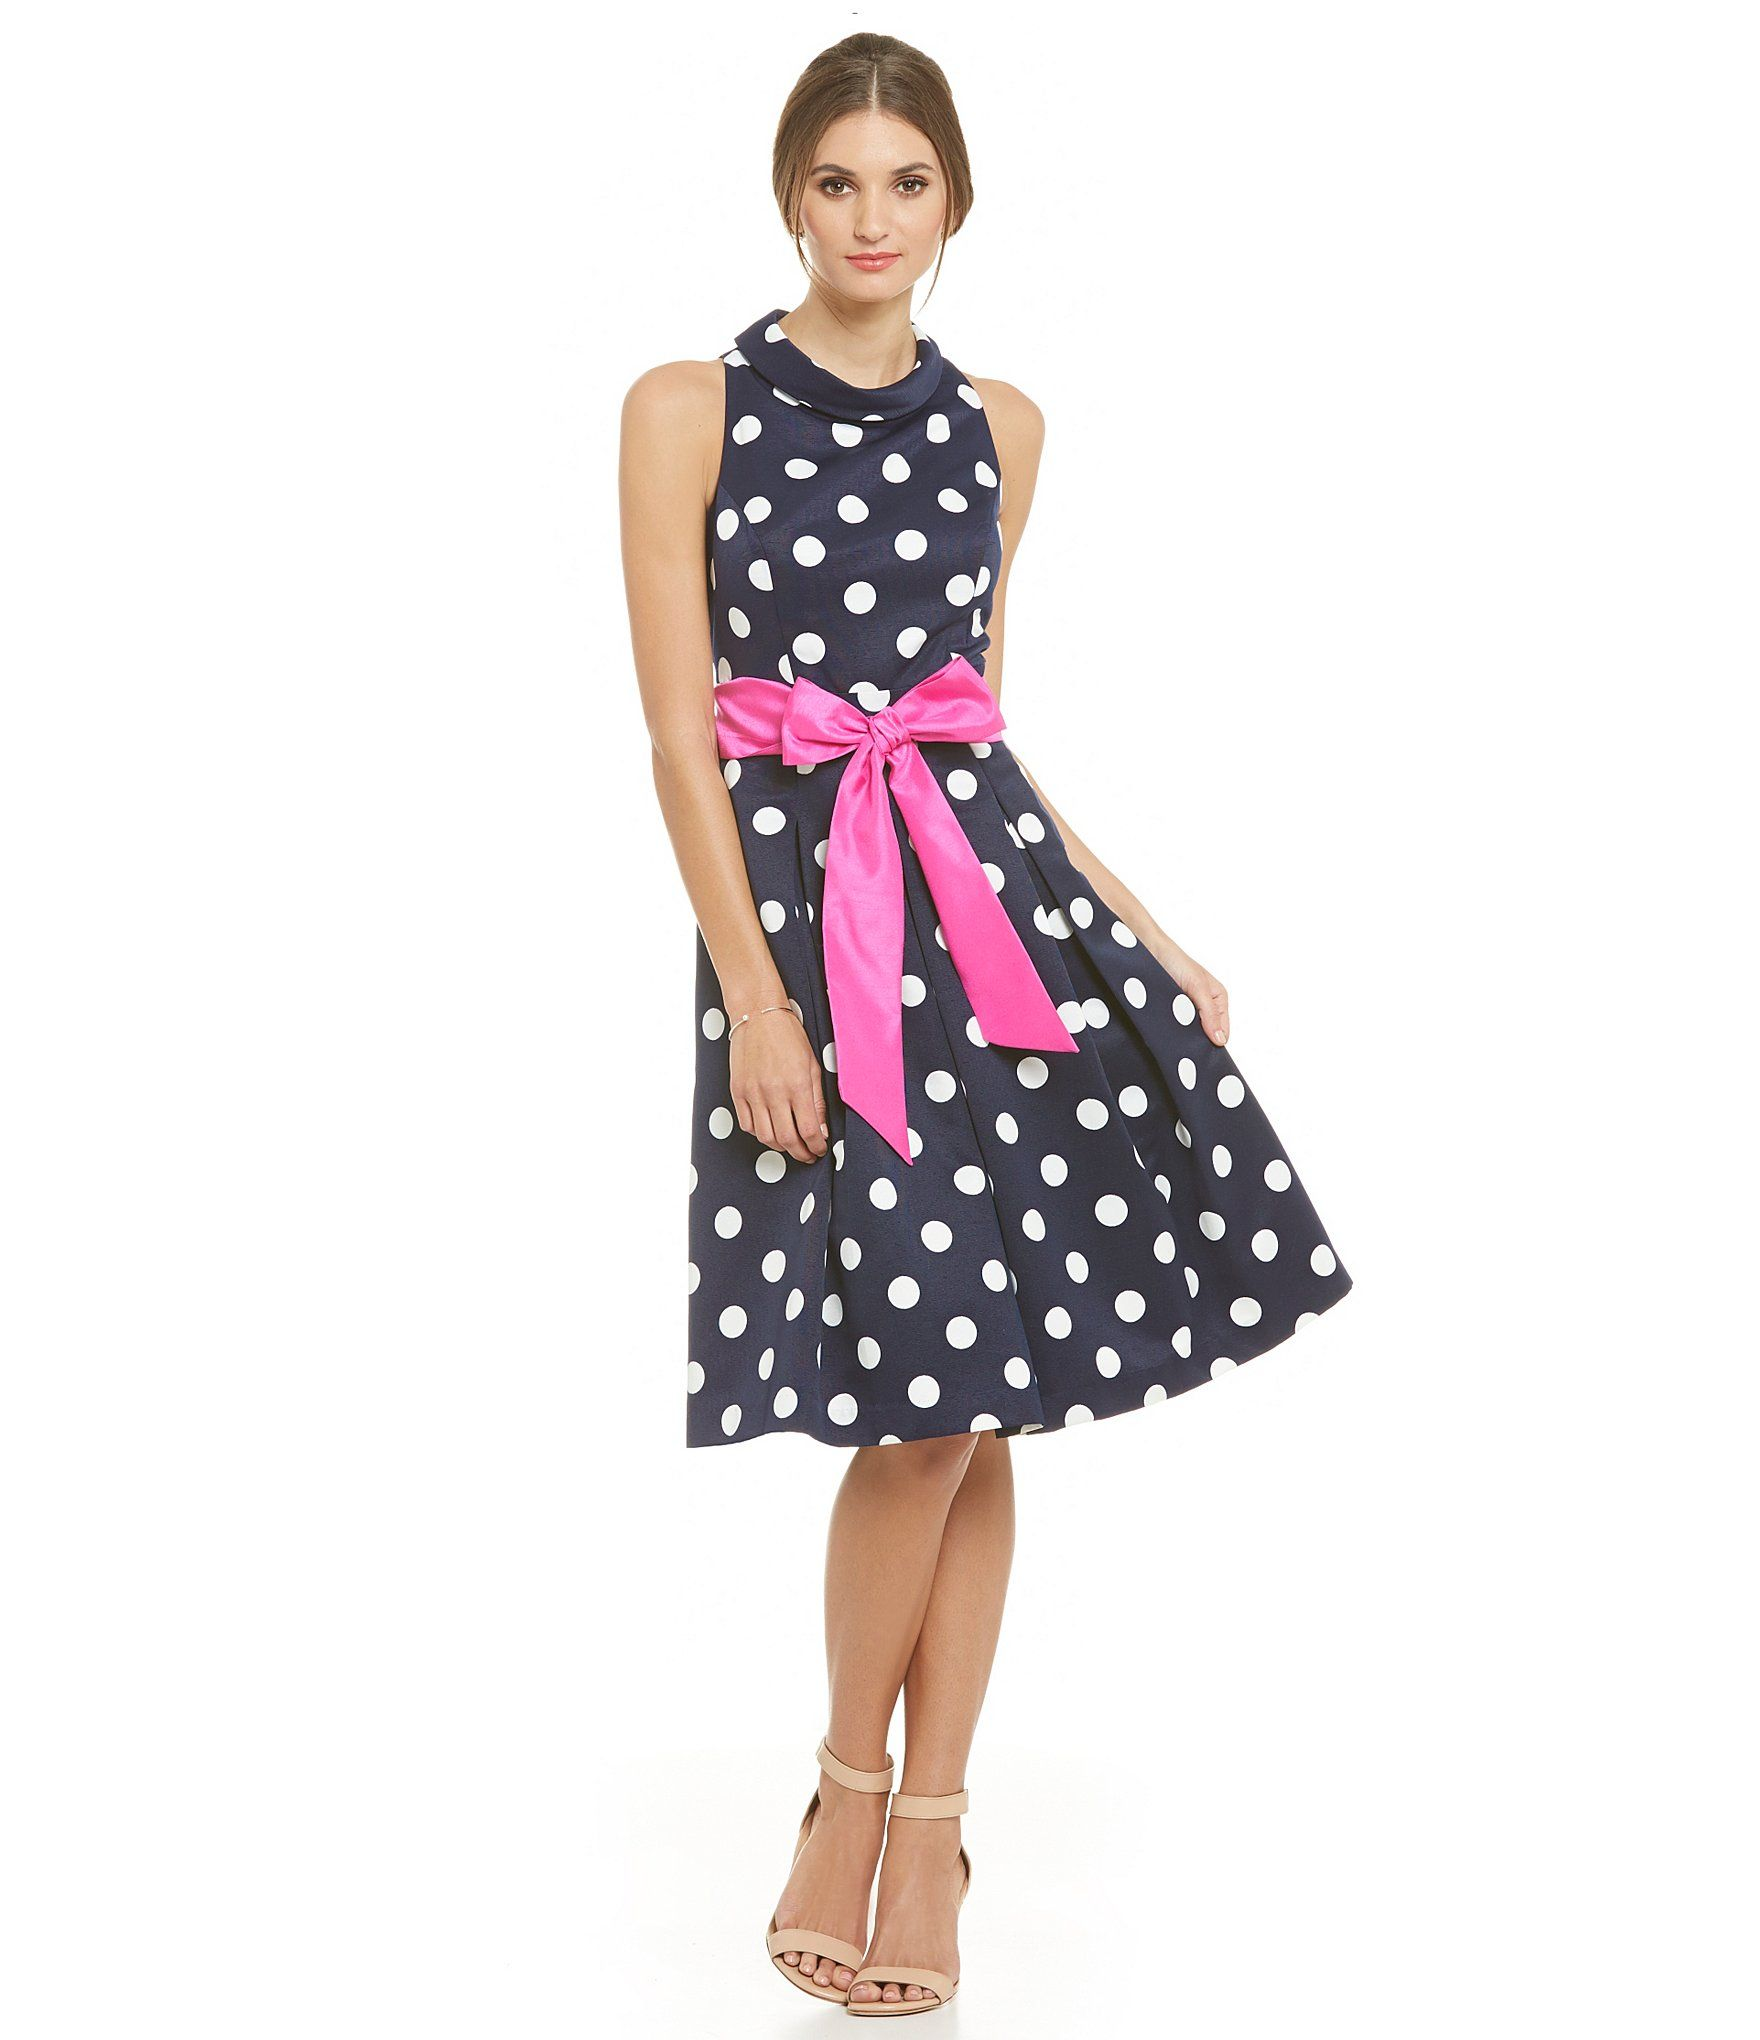 Eliza j polka dot midi dress dillards baby shower pinterest eliza j polka dot midi dress dillards ombrellifo Choice Image